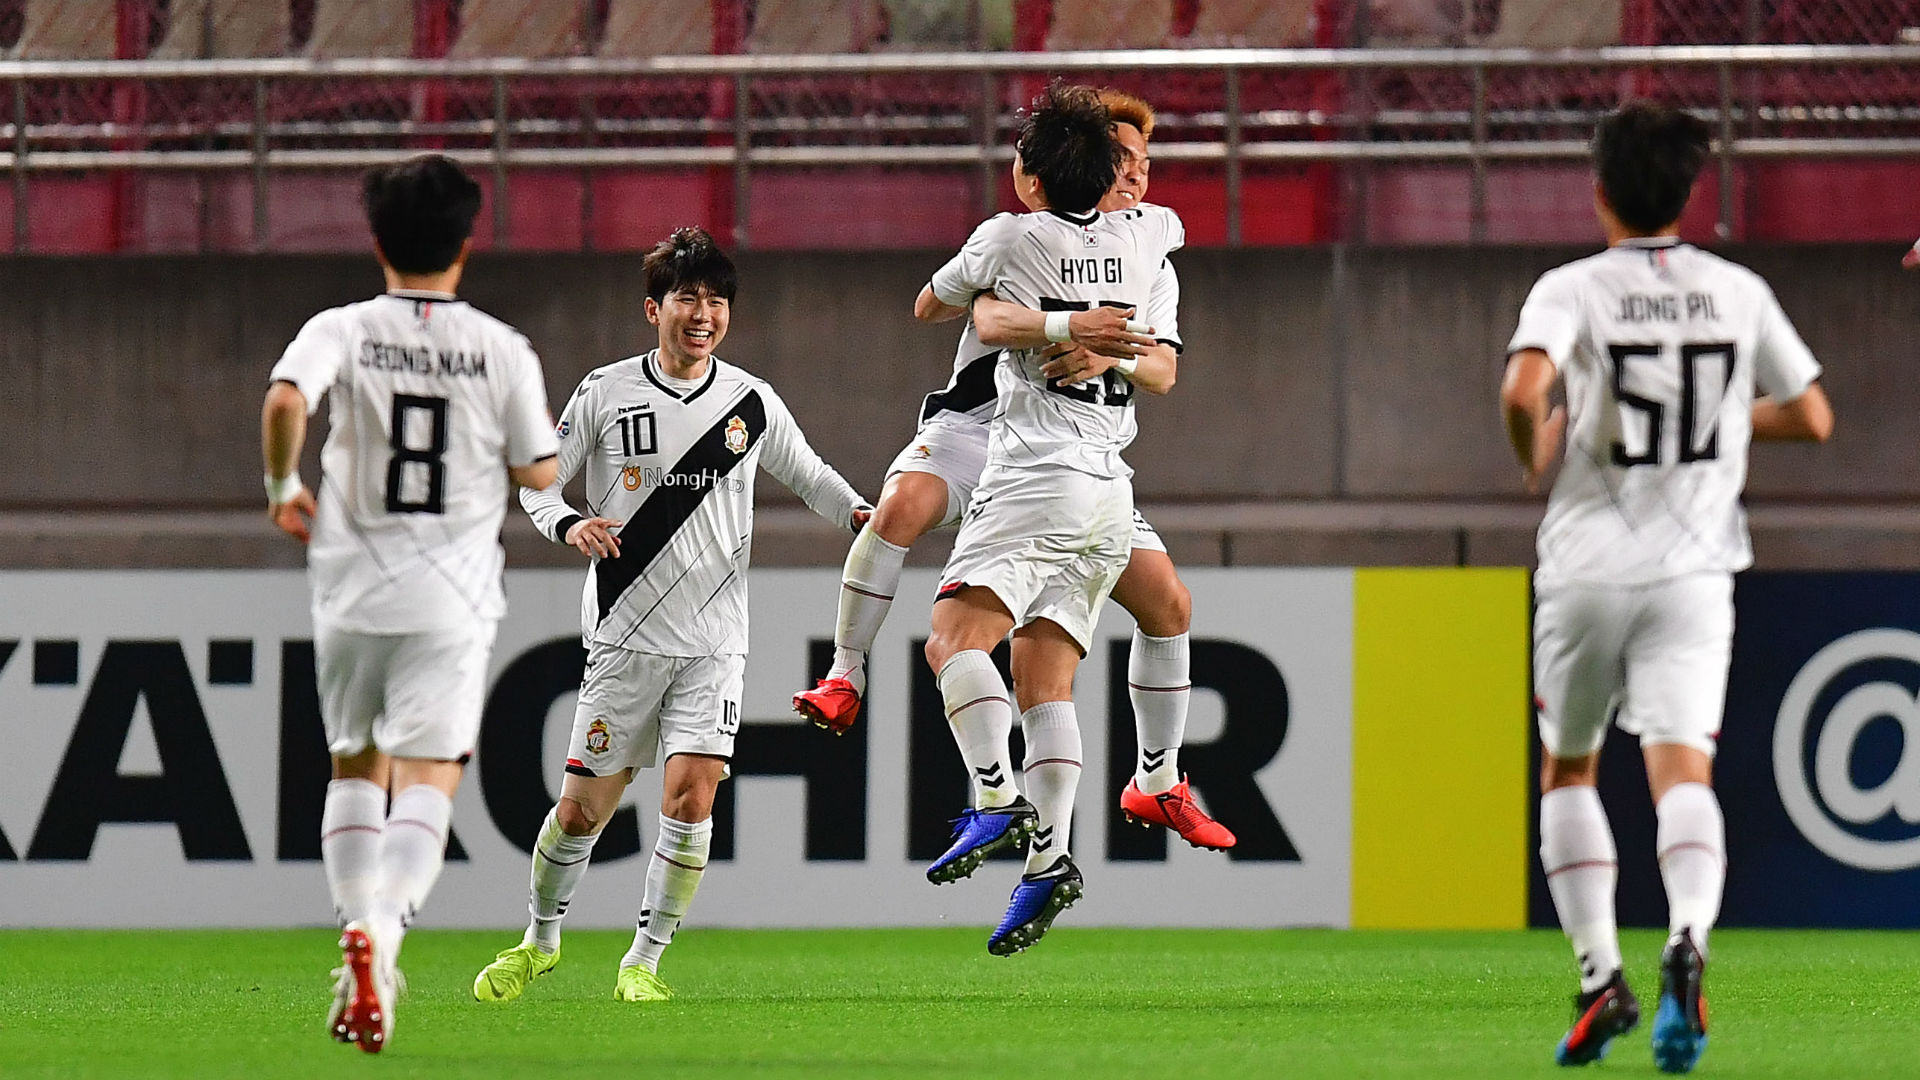 AFC Champions League Review: Holders Kashima Antlers suffer first defeat